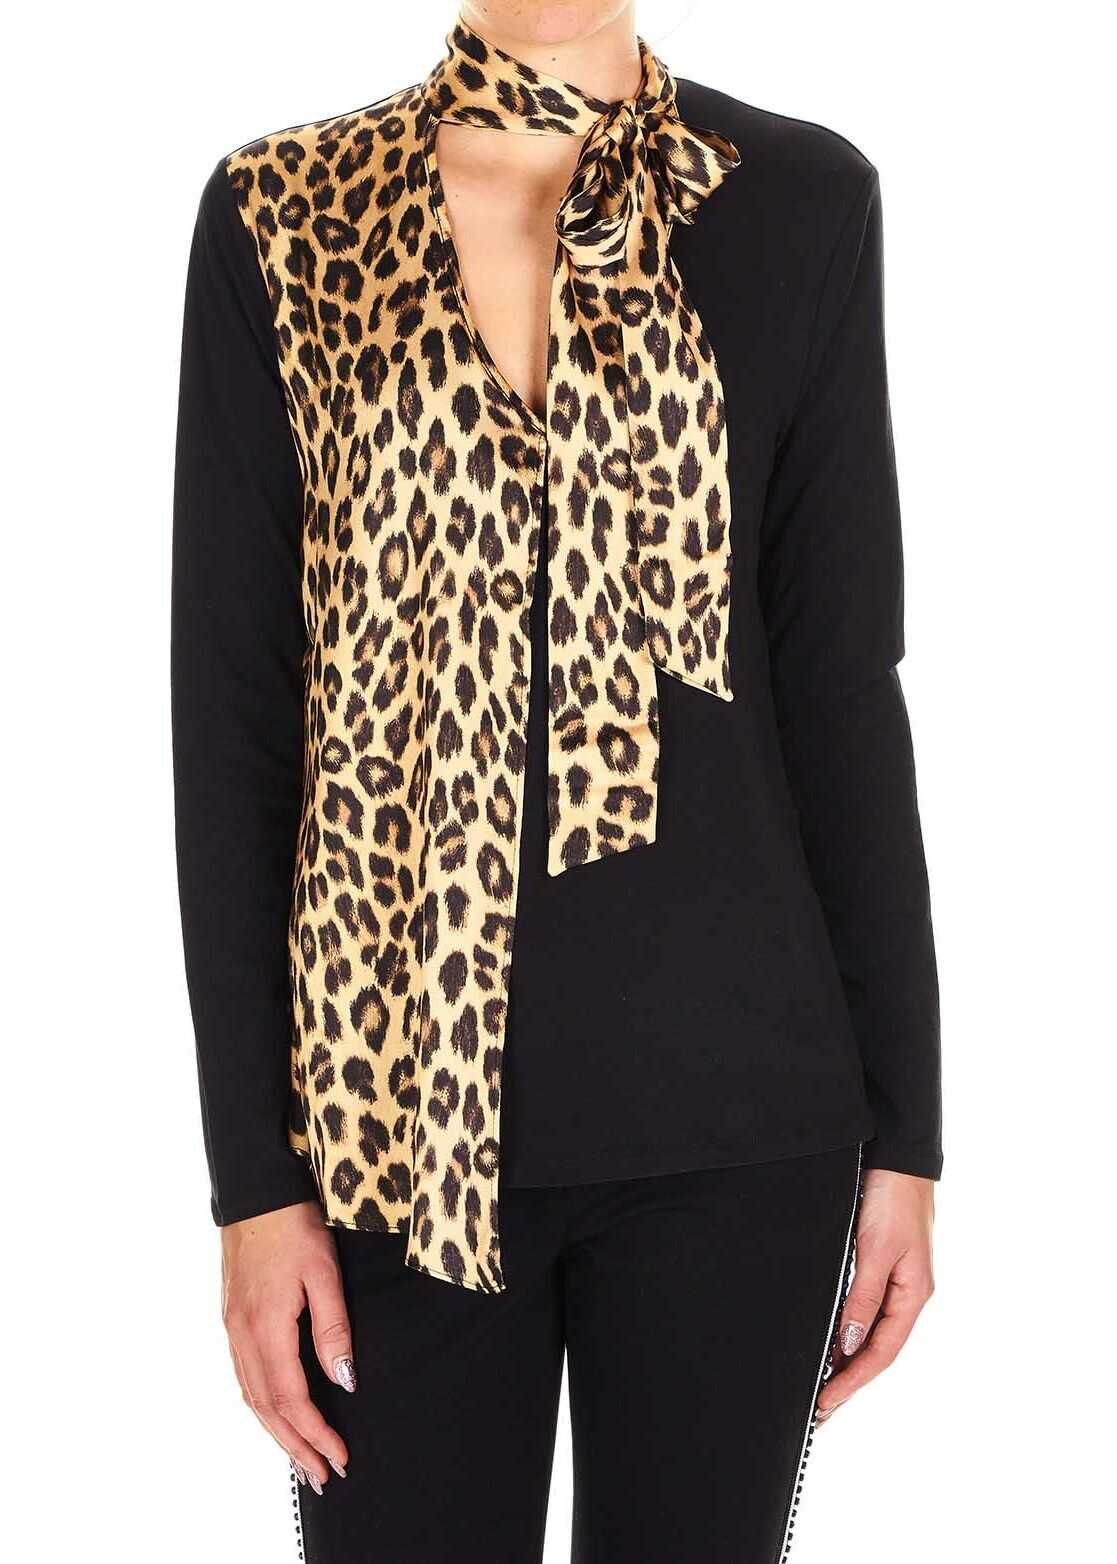 Longsleeve with details in animal print